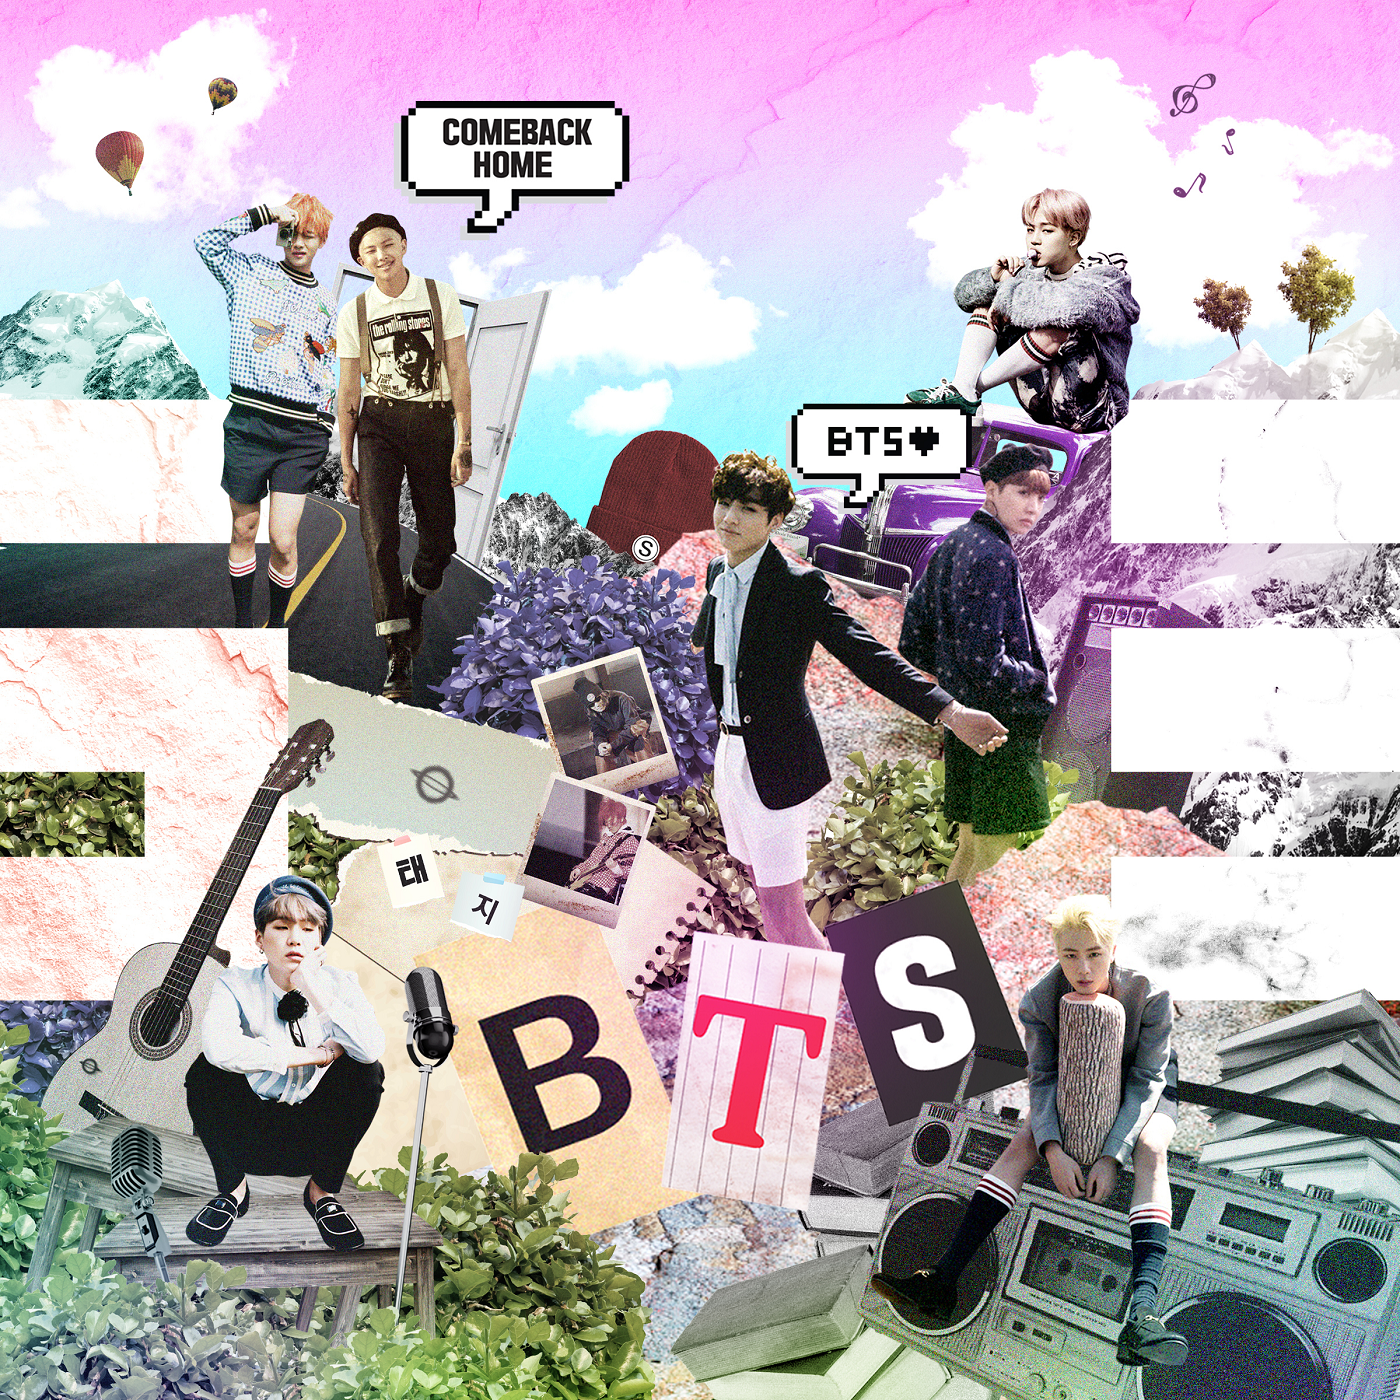 Bts Cover Mixtape Ost Collaboration Other Non Album Song